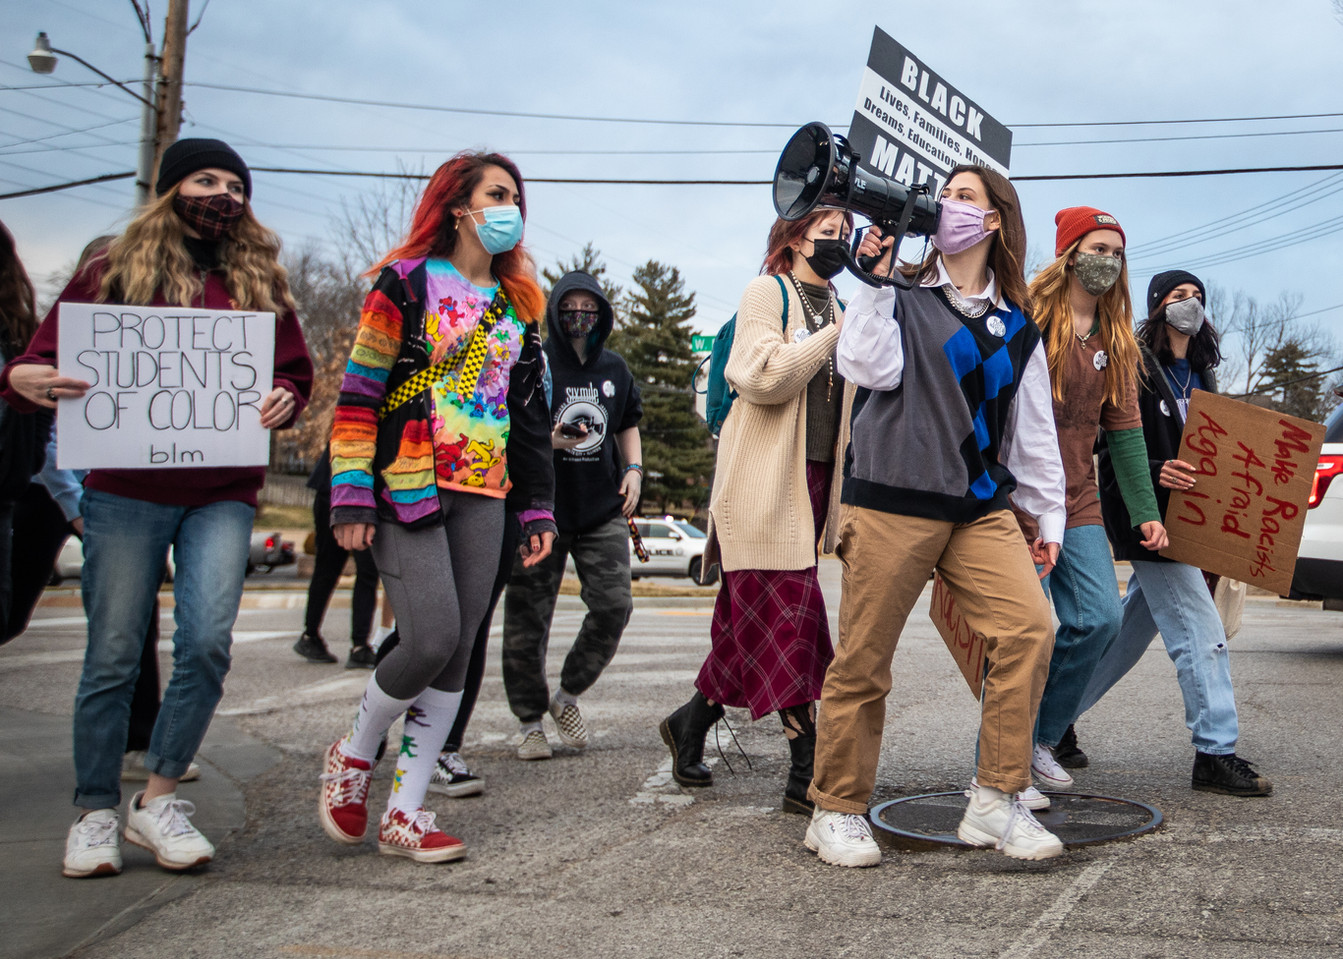 Kirkwood High School sophomore and march co-organizer Kylie Madden, third from right, leads marchers in a chant as the group crosses Essex Avenue in Kirkwood, Missouri on Jan. 13, 2021. About 150 high school students and locals marched from Kirkwood High School to the Kirkwood Police Department to encourage prosecutors to take recent racist vandalism of the school seriously.